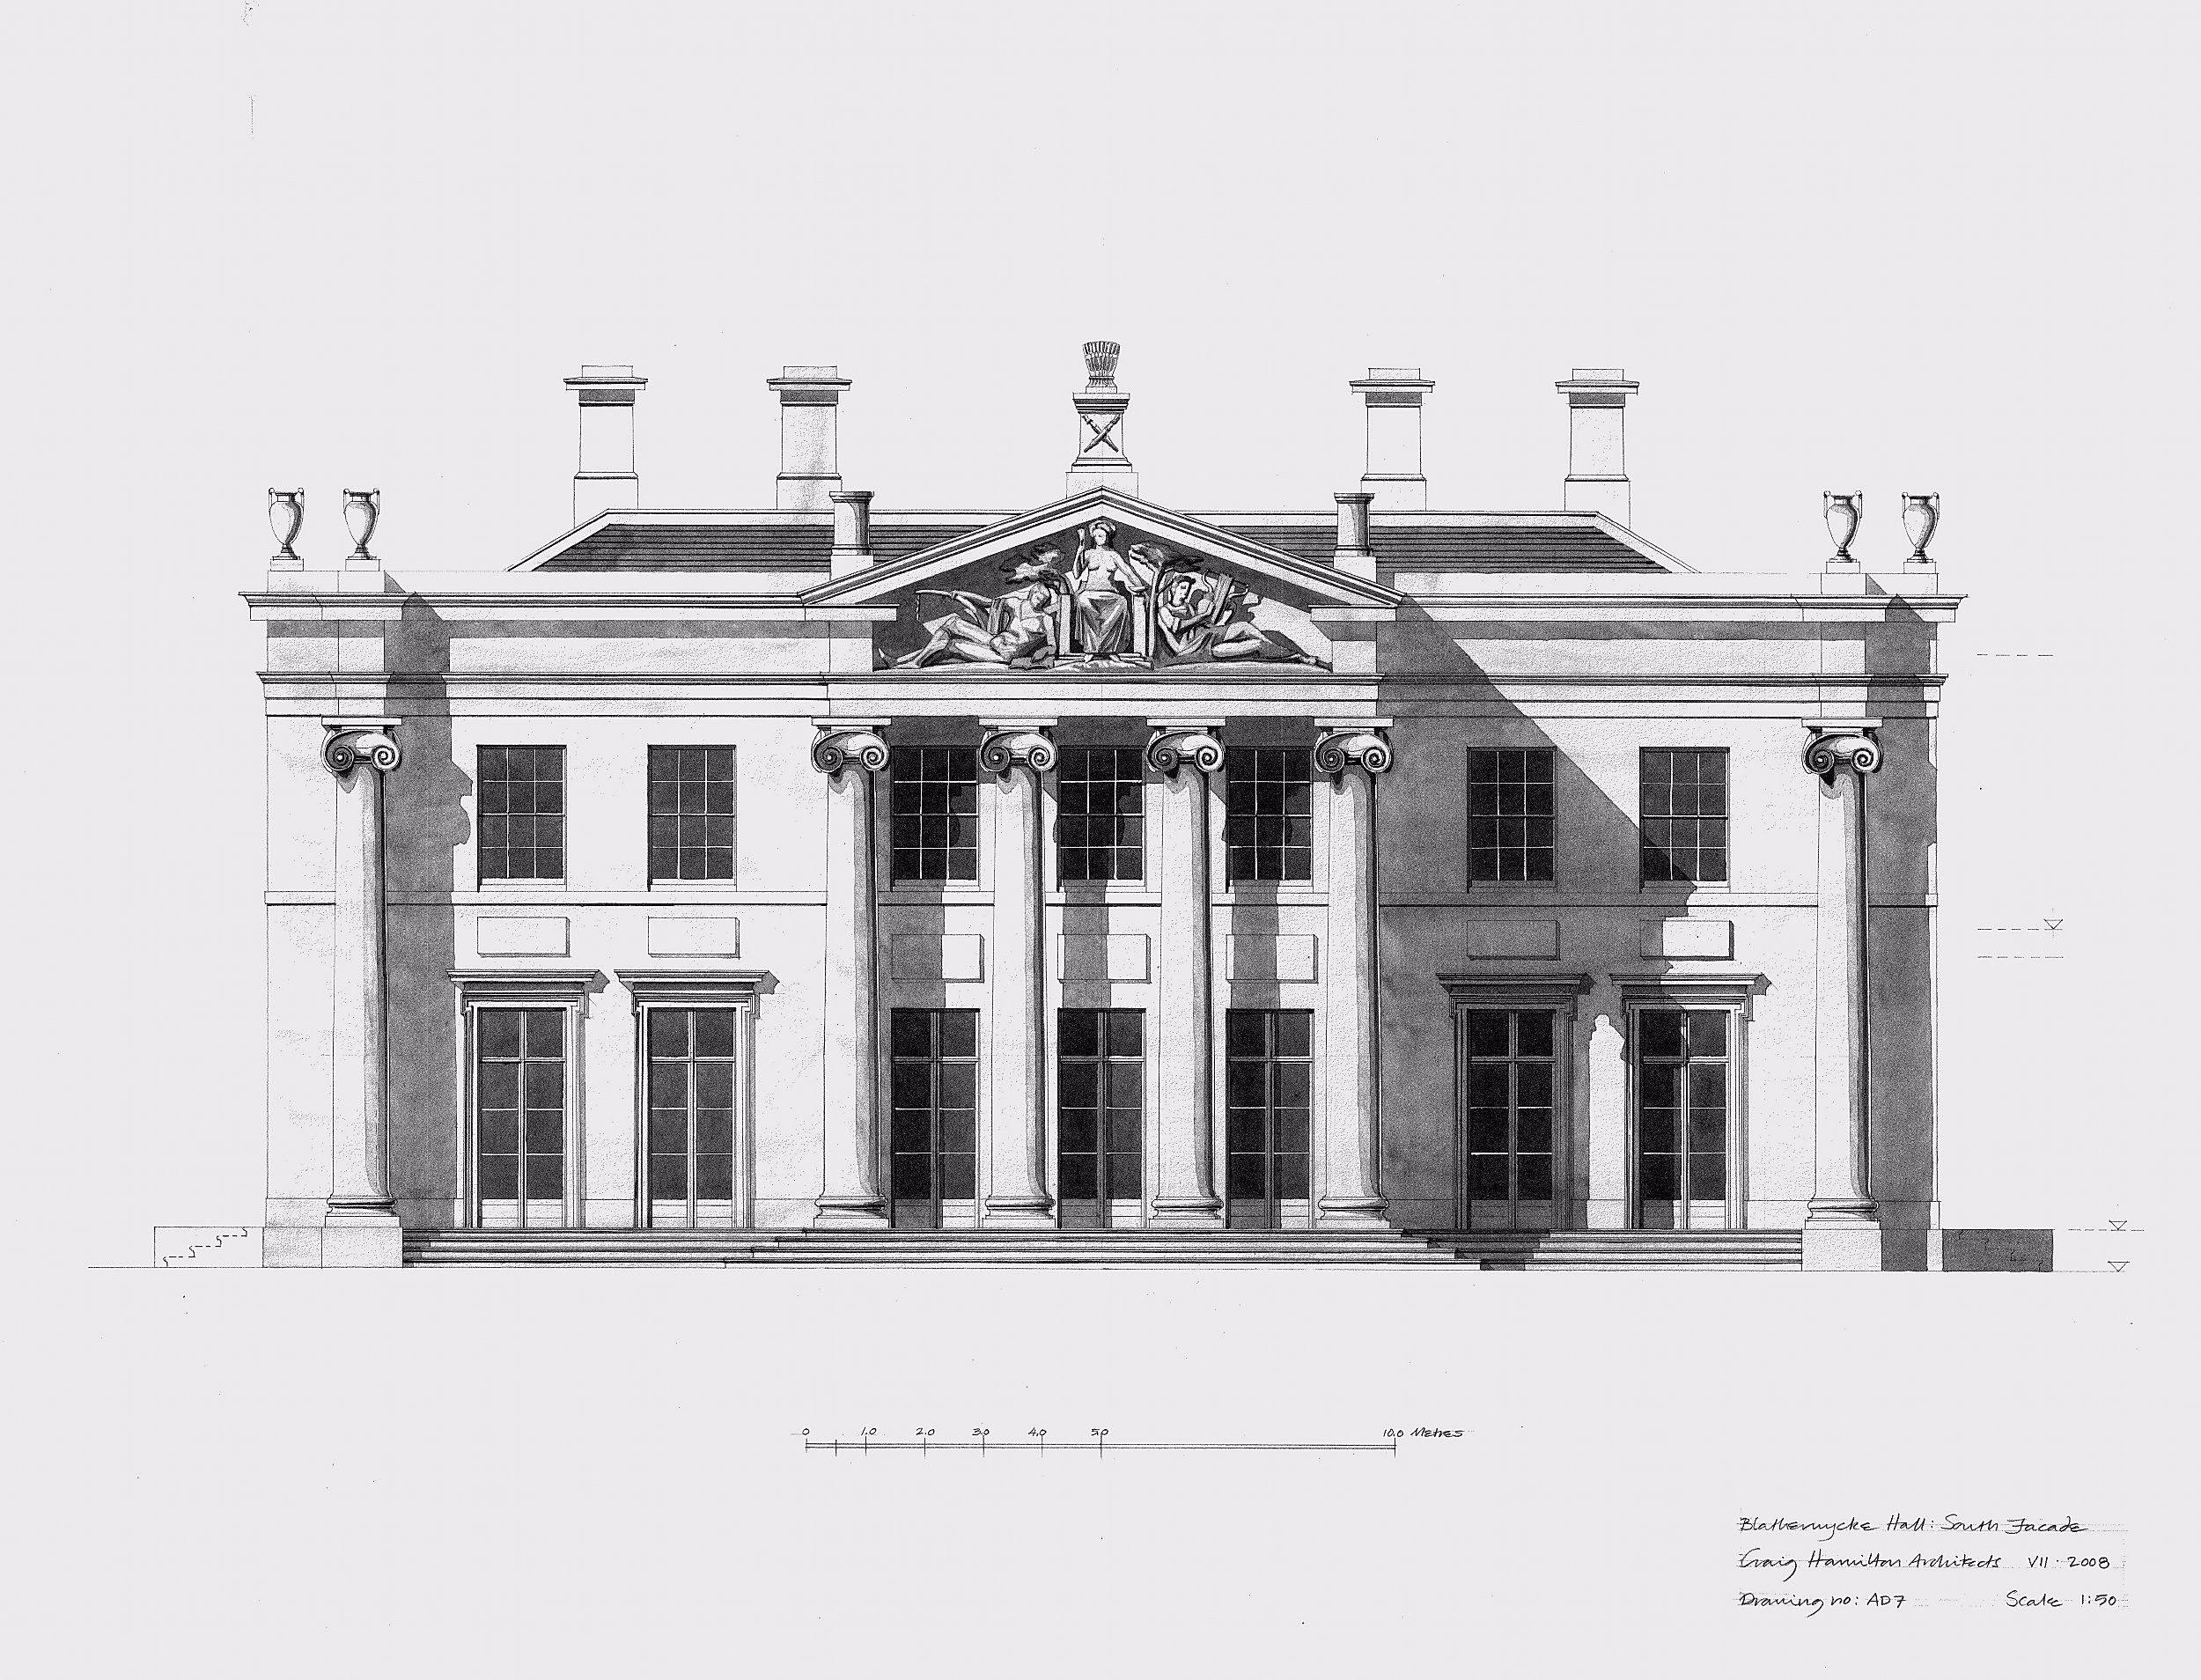 Projects a new country house for an historic estate in shropshire craig hamilton architects building plansarchitectural drawingsthe